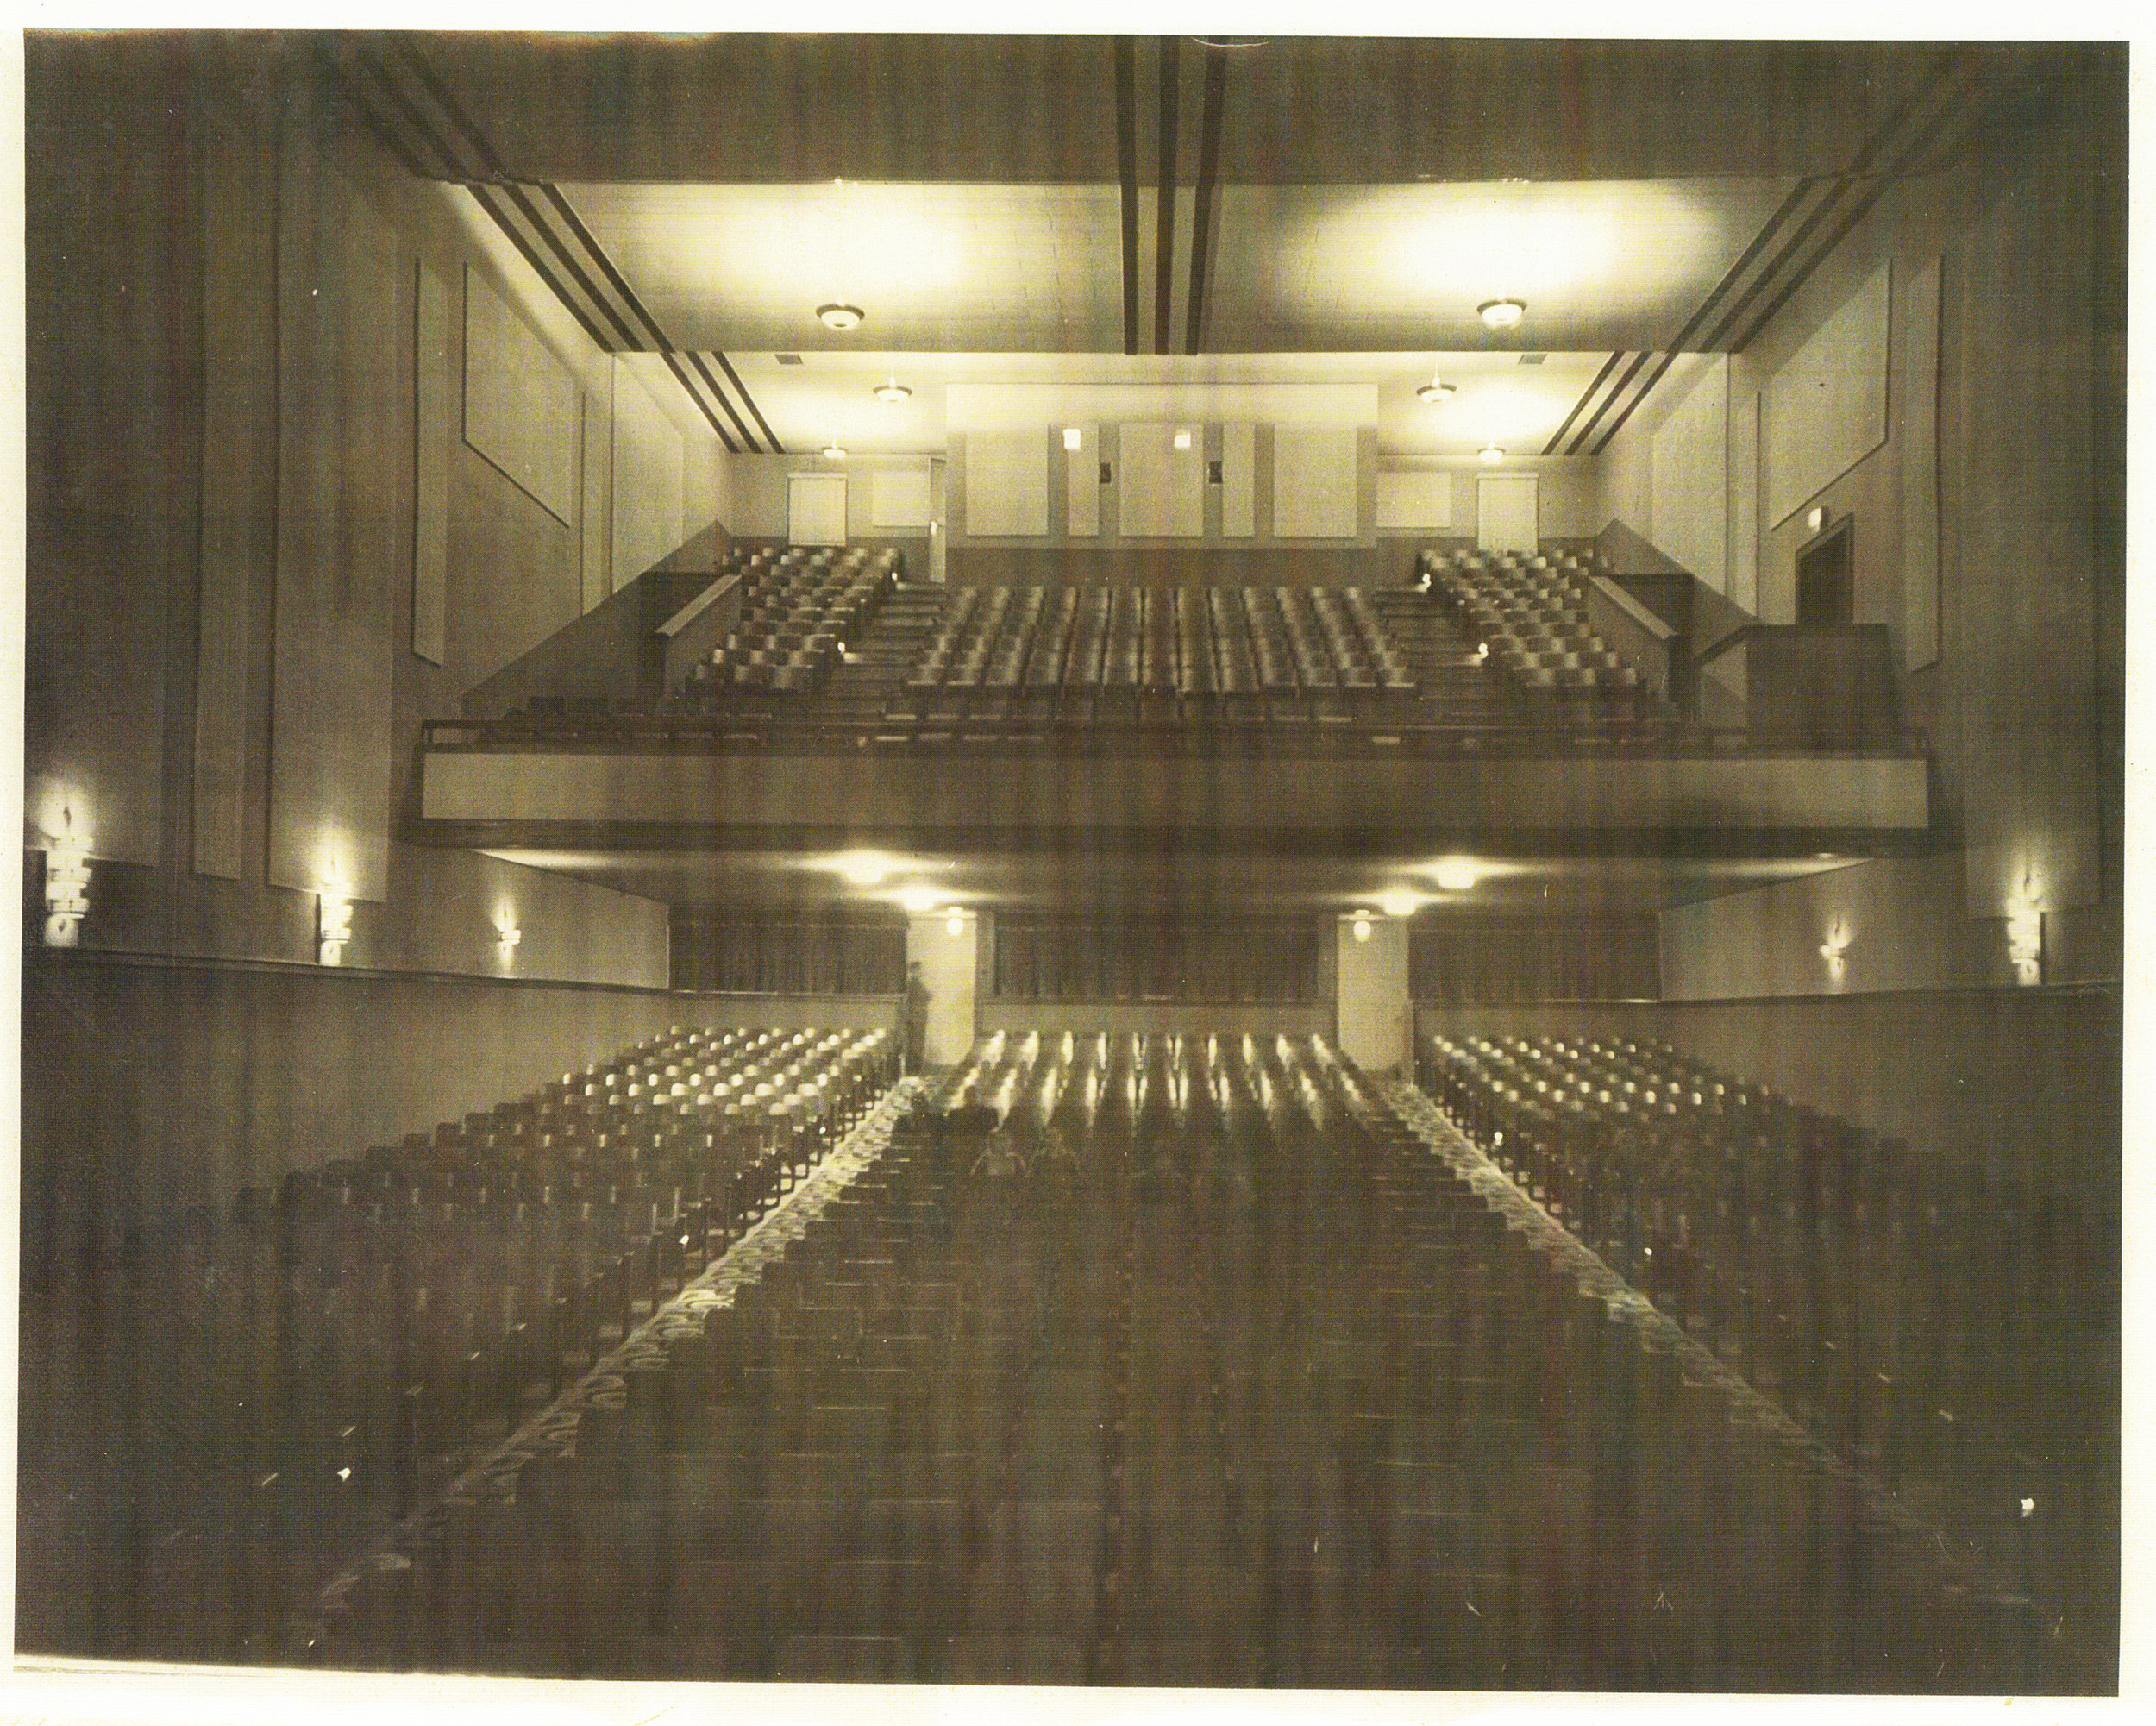 The auditorium of the Appalachian Theatre in November 1938, as seen from the stage. Image courtesy of the Sams Family.